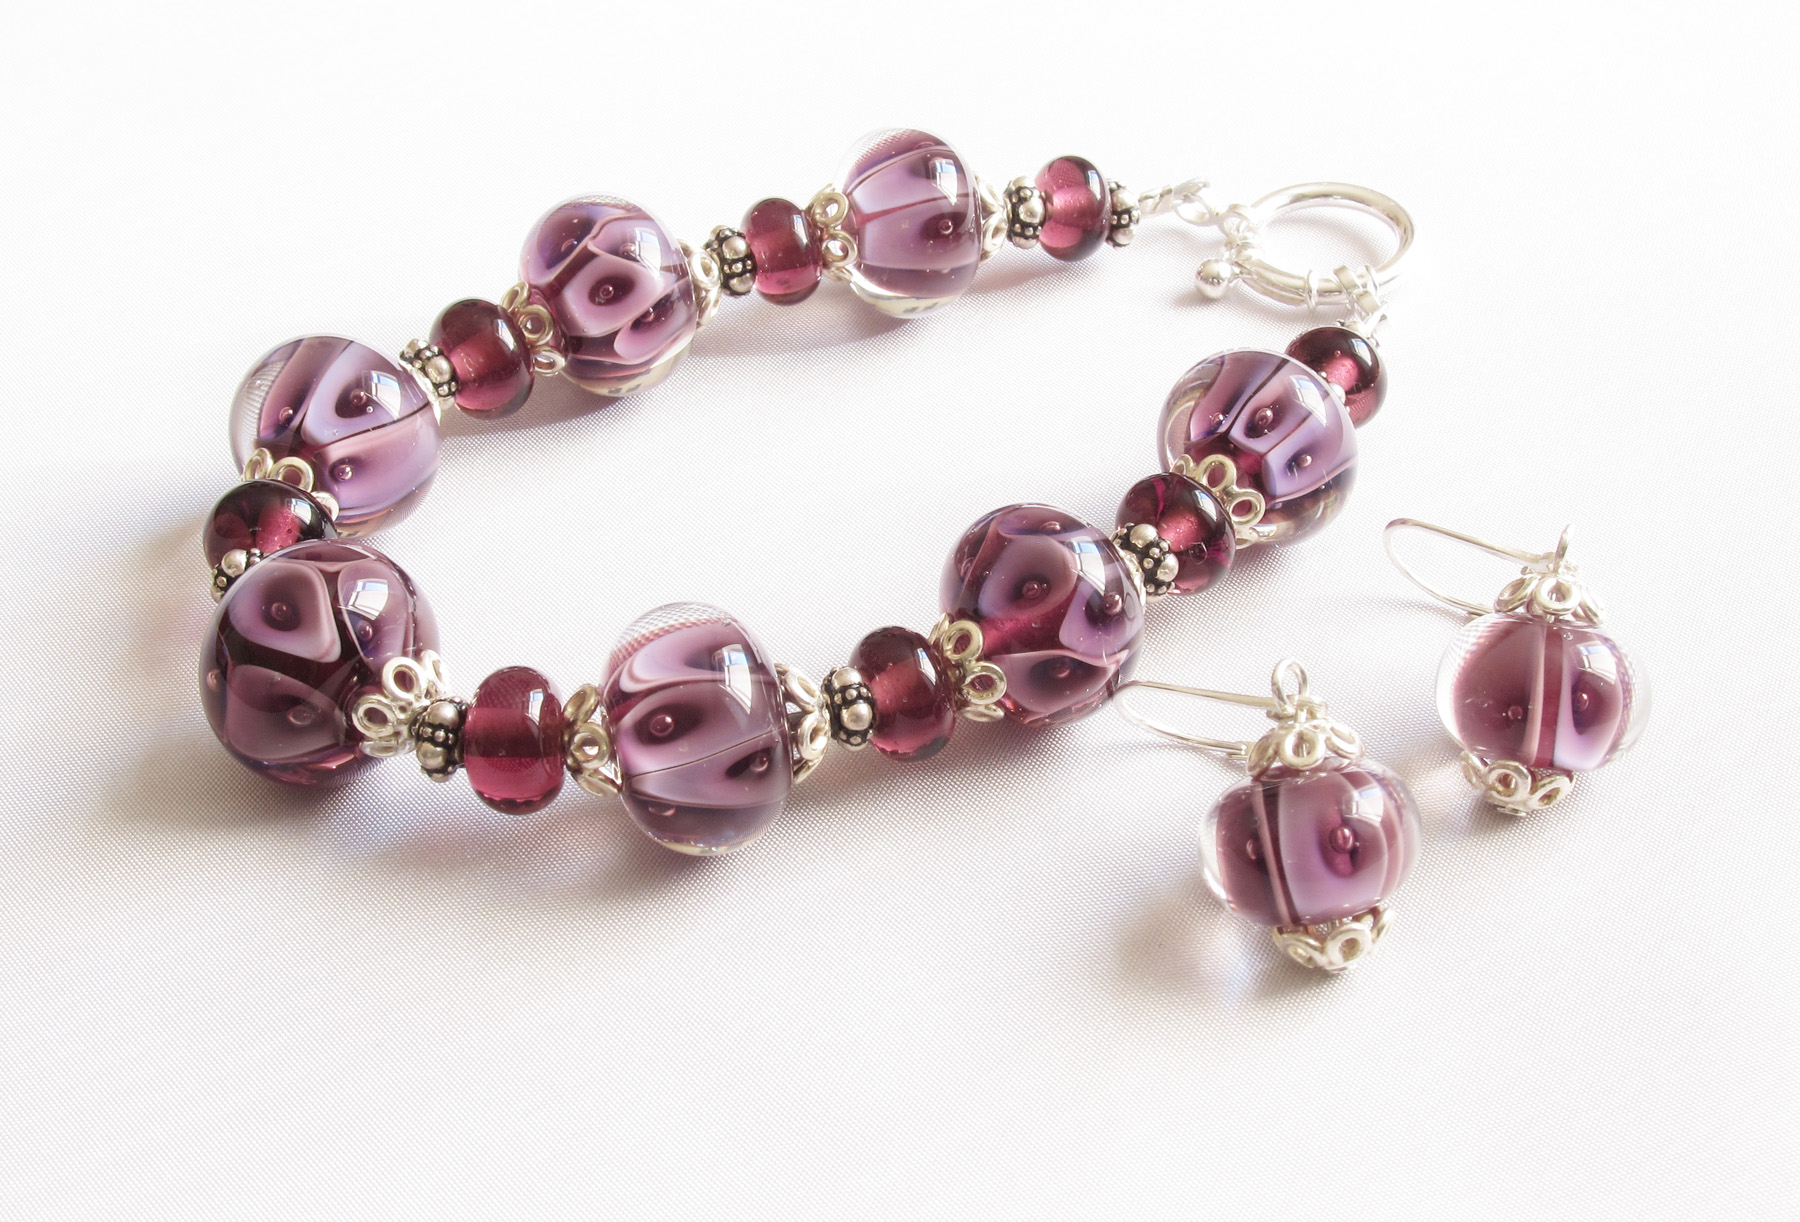 Lavender And Purple Plunge Bracelet and Earrings Set